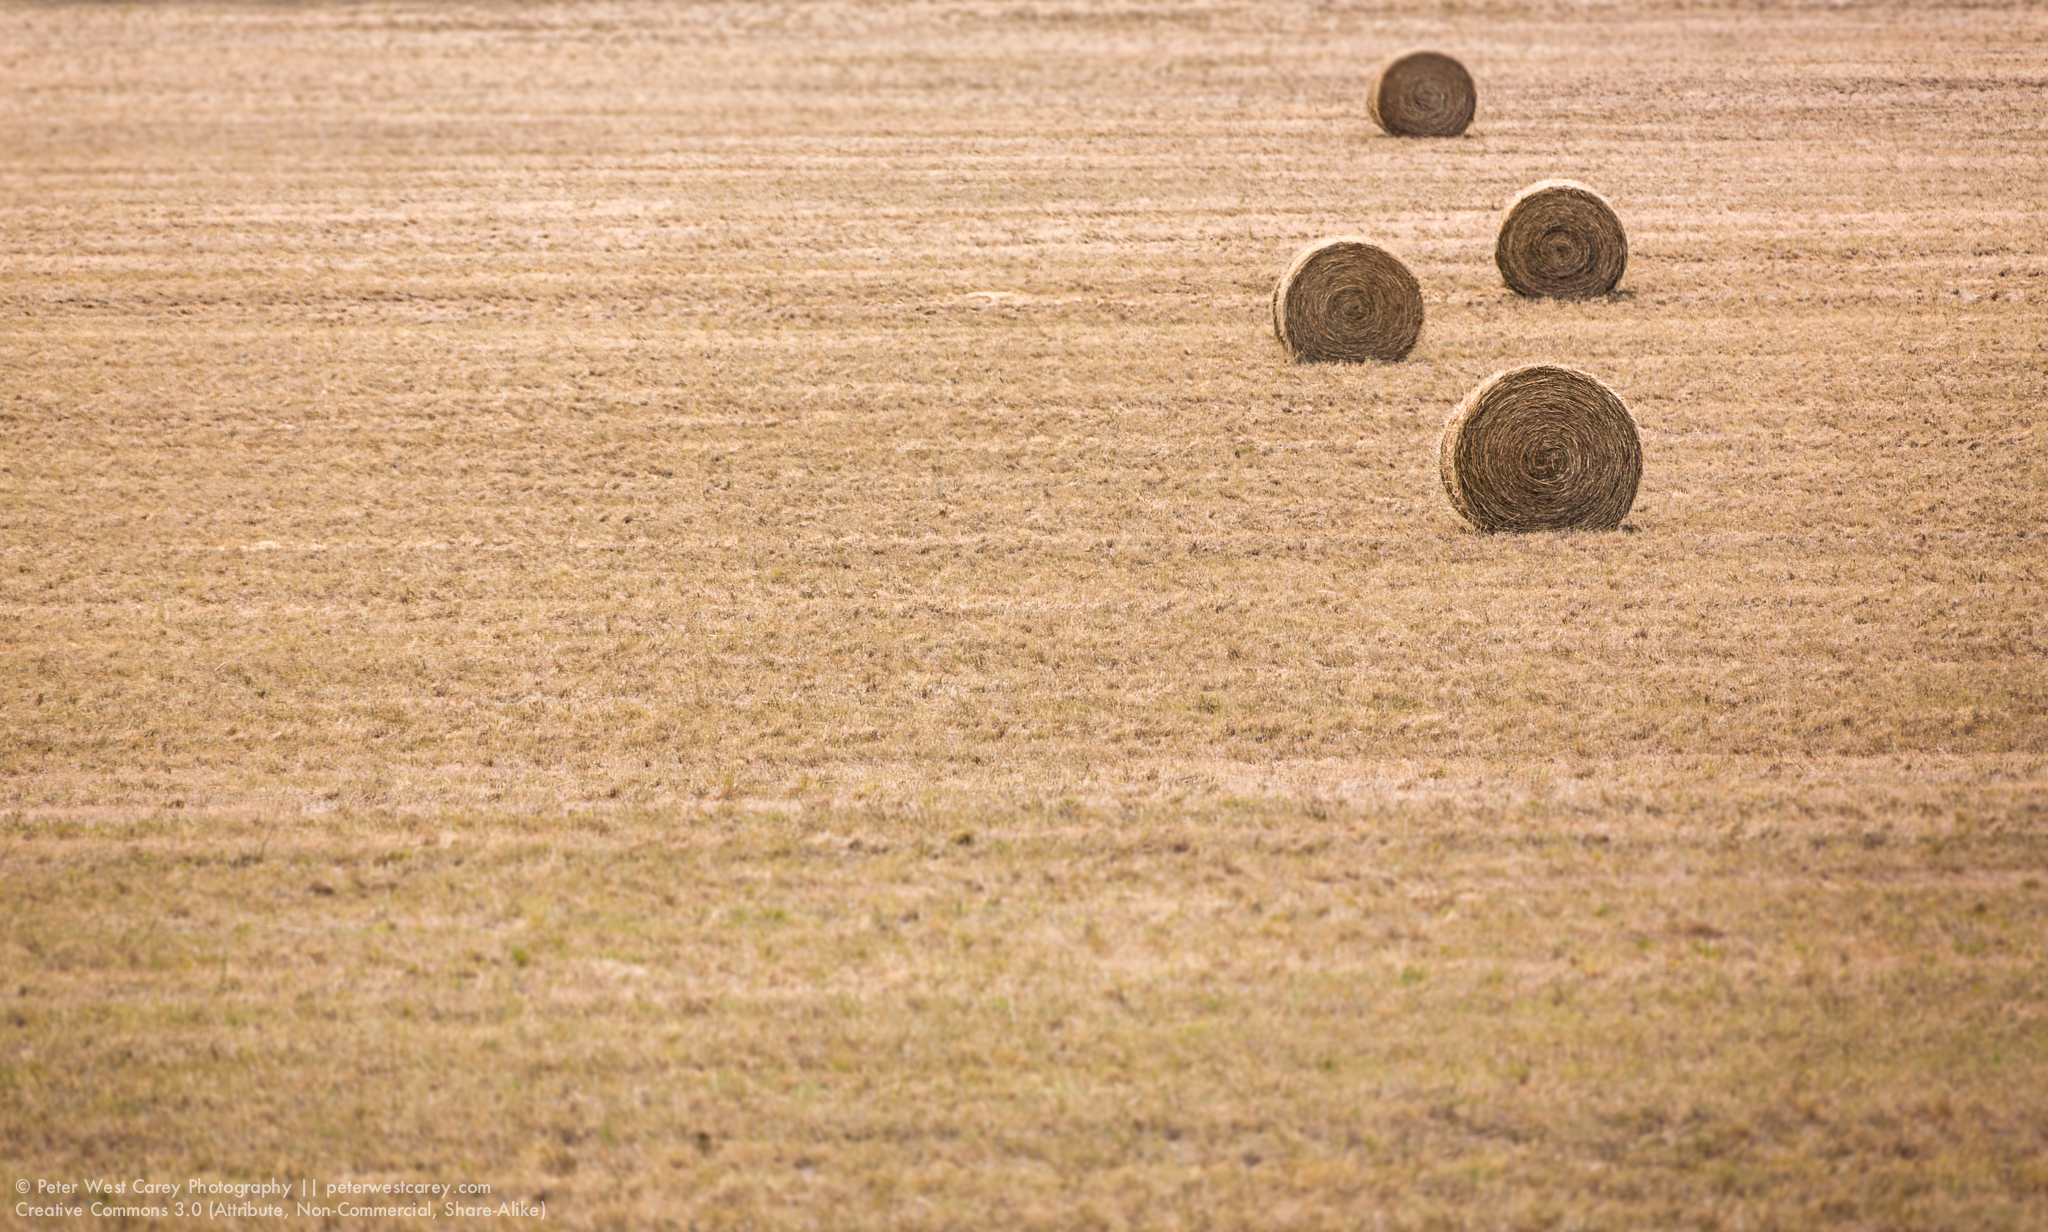 Four Hay Rolls, South Dakota, USA